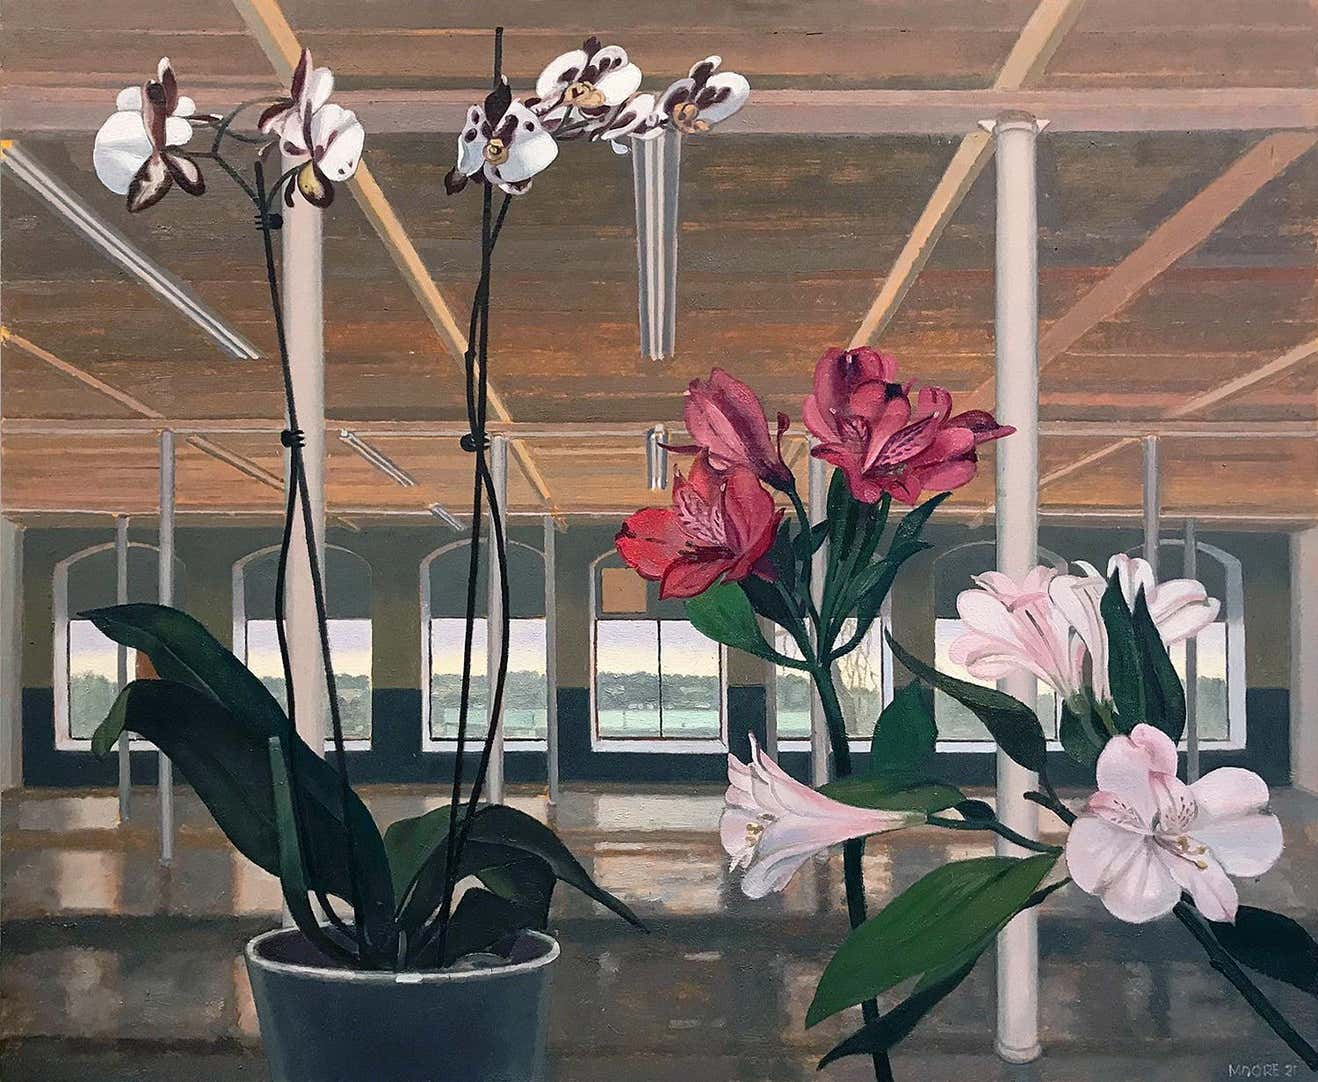 Orchids and Lilies, 2021, by John Moore